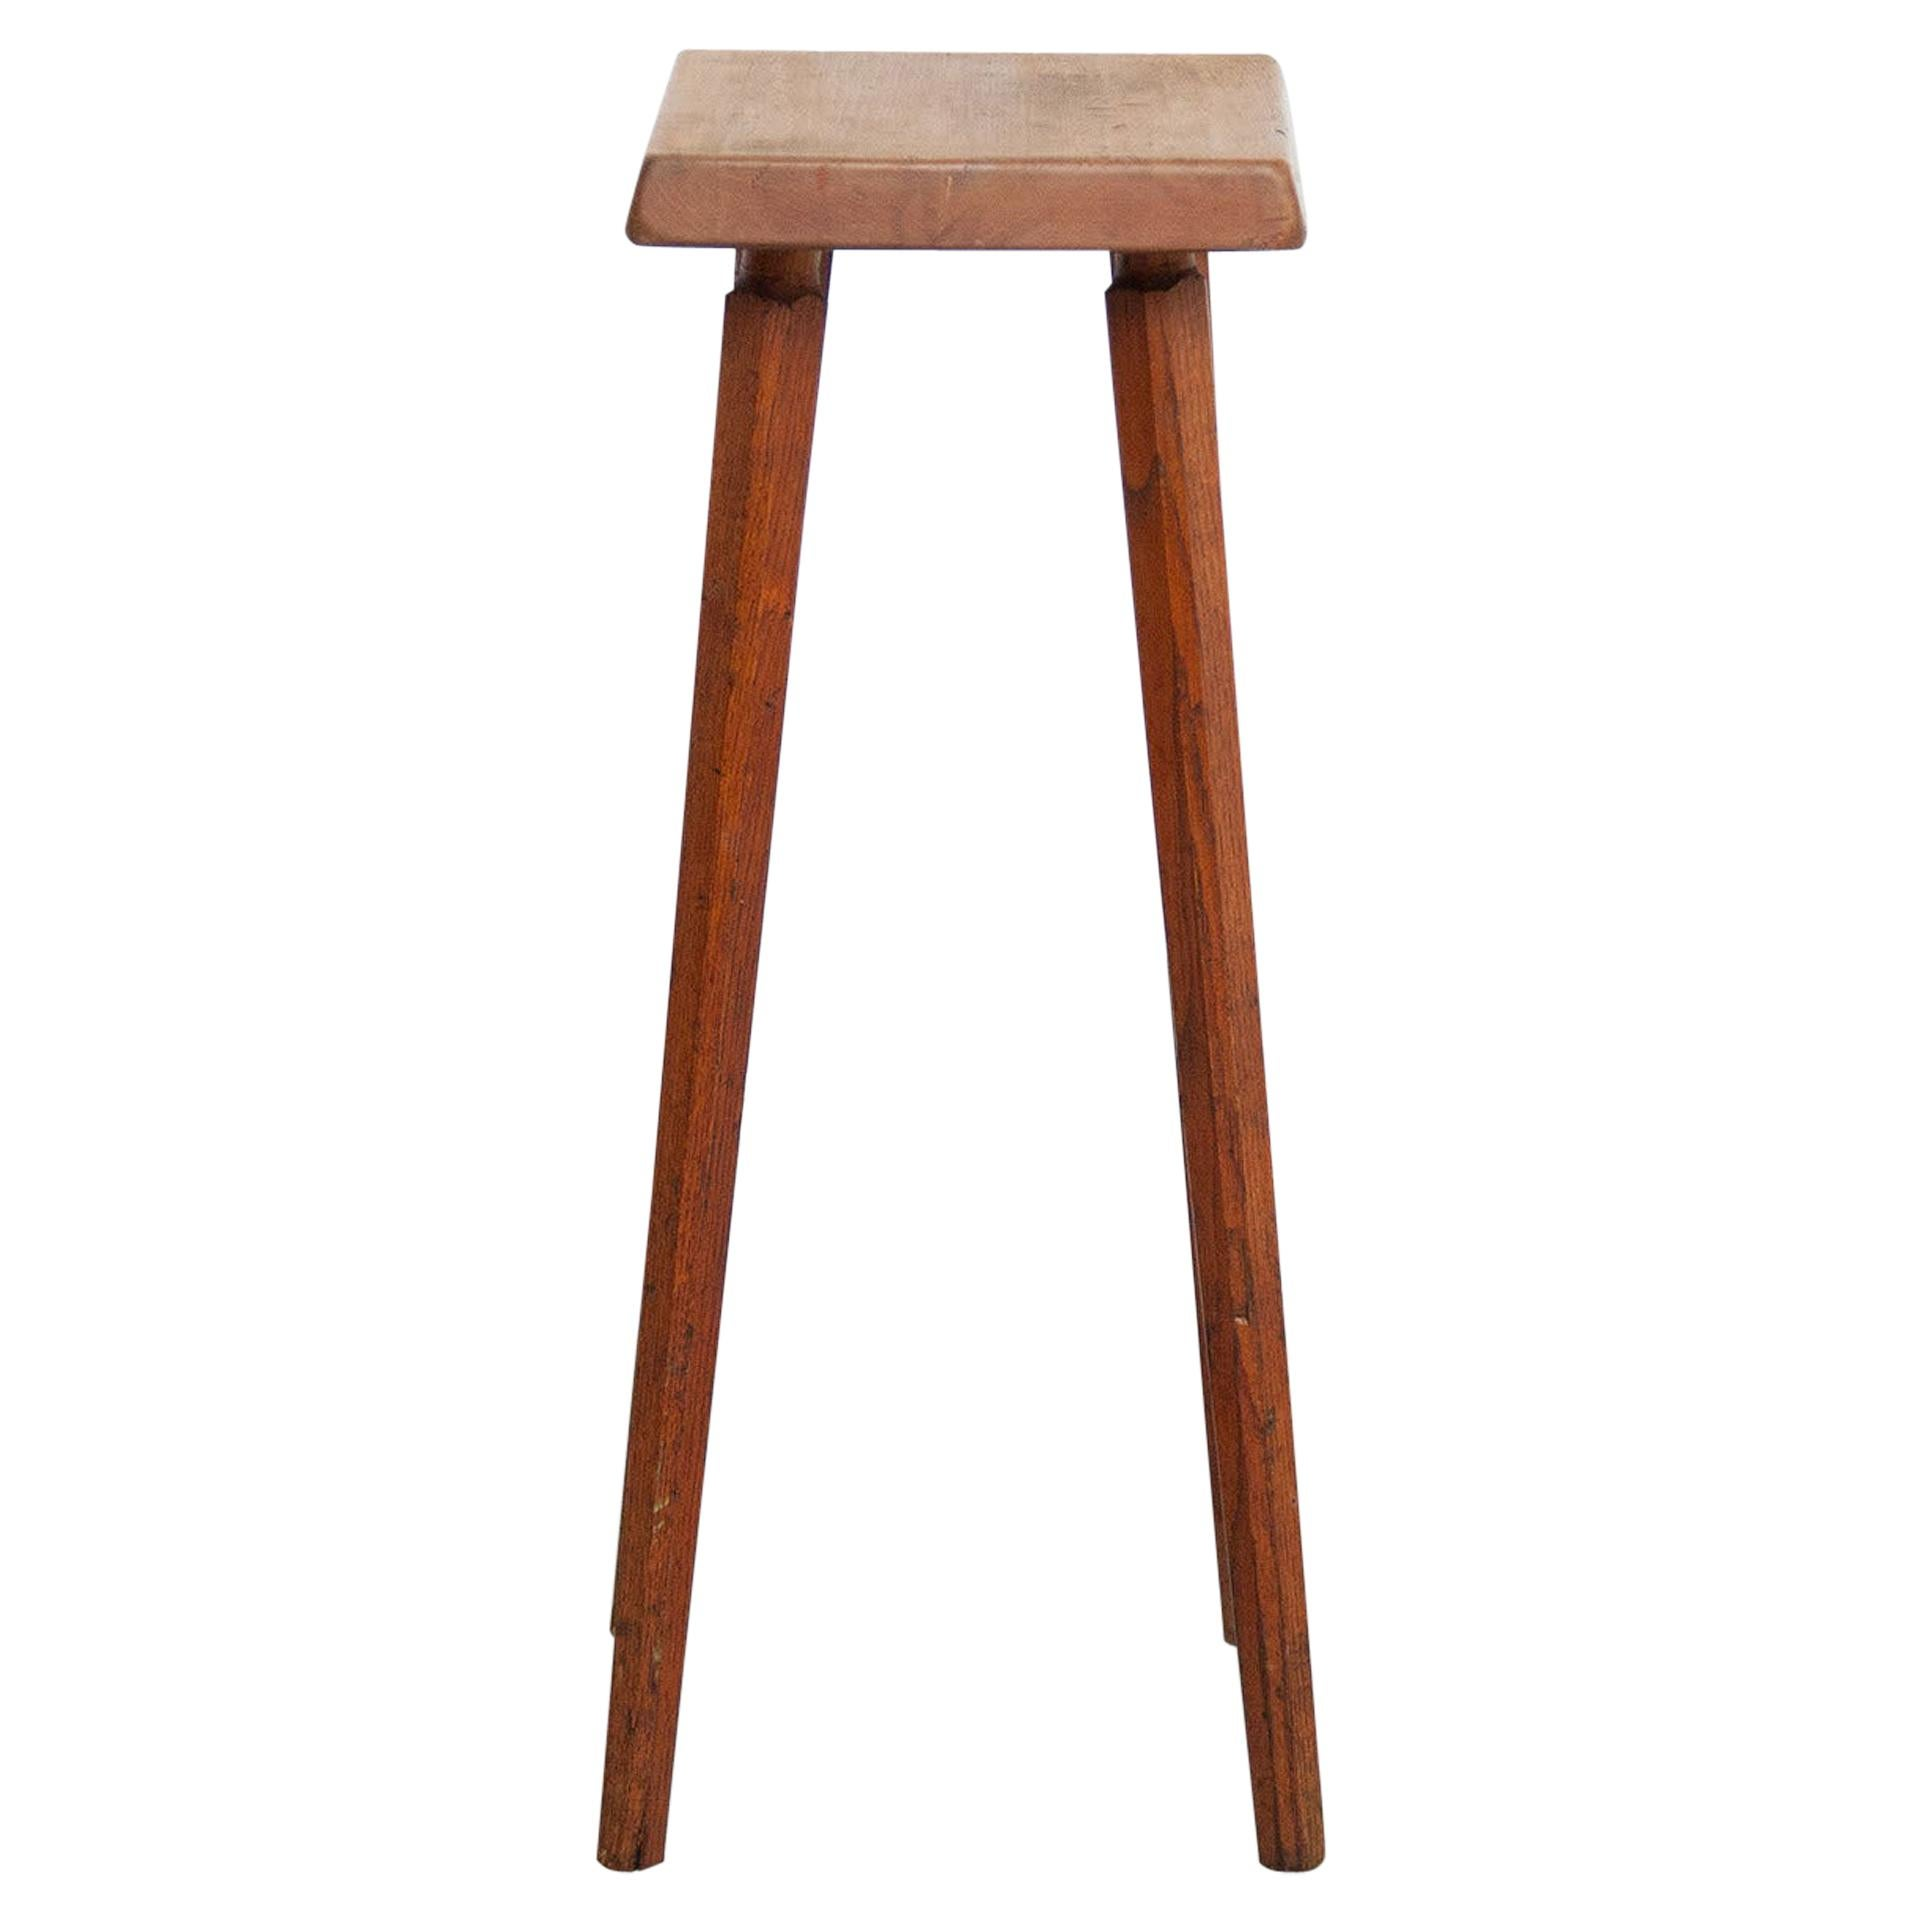 Pierre Chapo Mid-Century Modern French Wood Stool, circa 1960